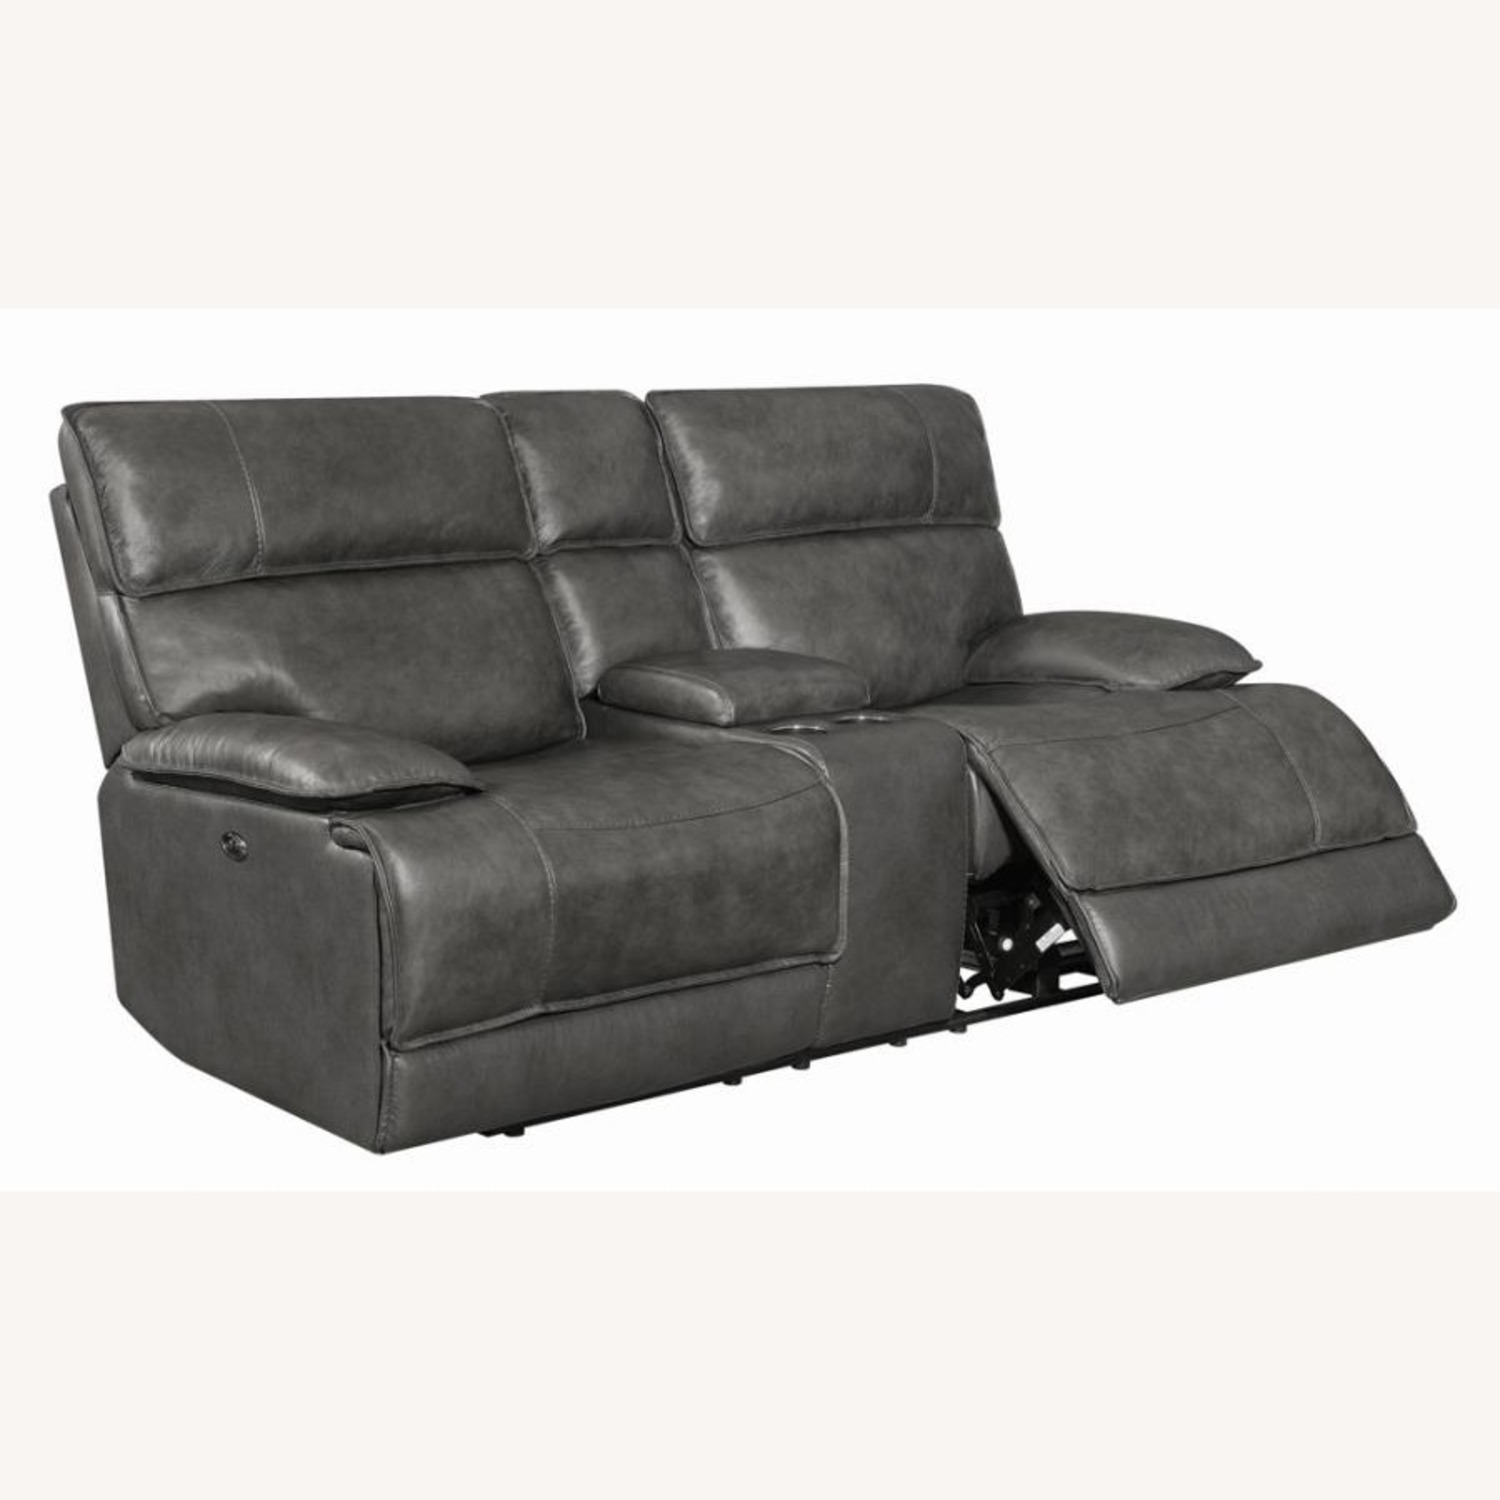 Power Recline Loveseat In Charcoal Leather - image-1